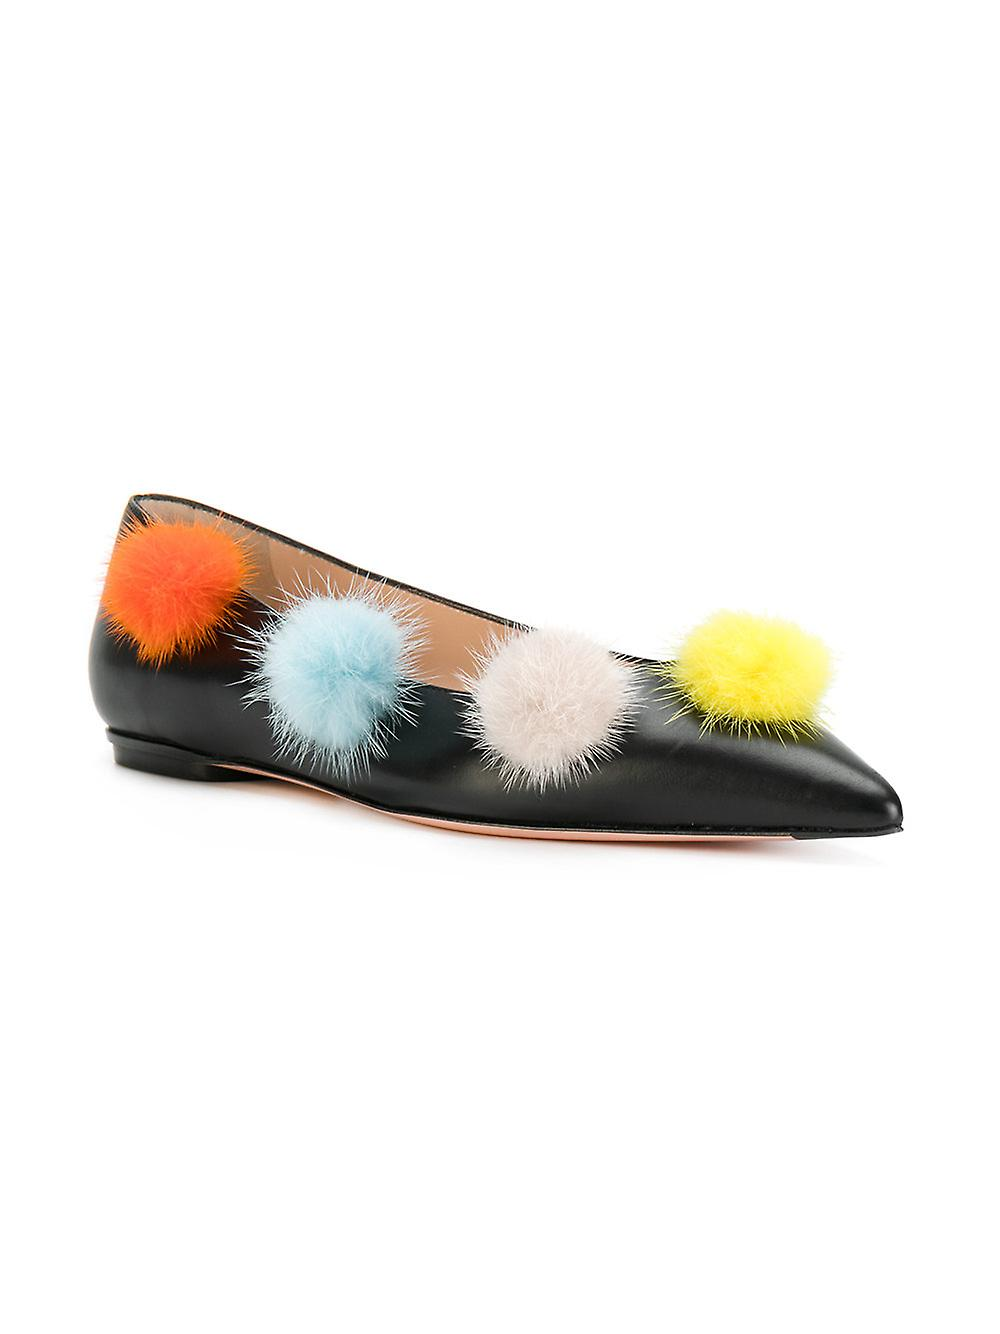 Fendi Women's Ballerina Leather Pom-Pom Ballerina Women's Flat Shoes Black 025fd7